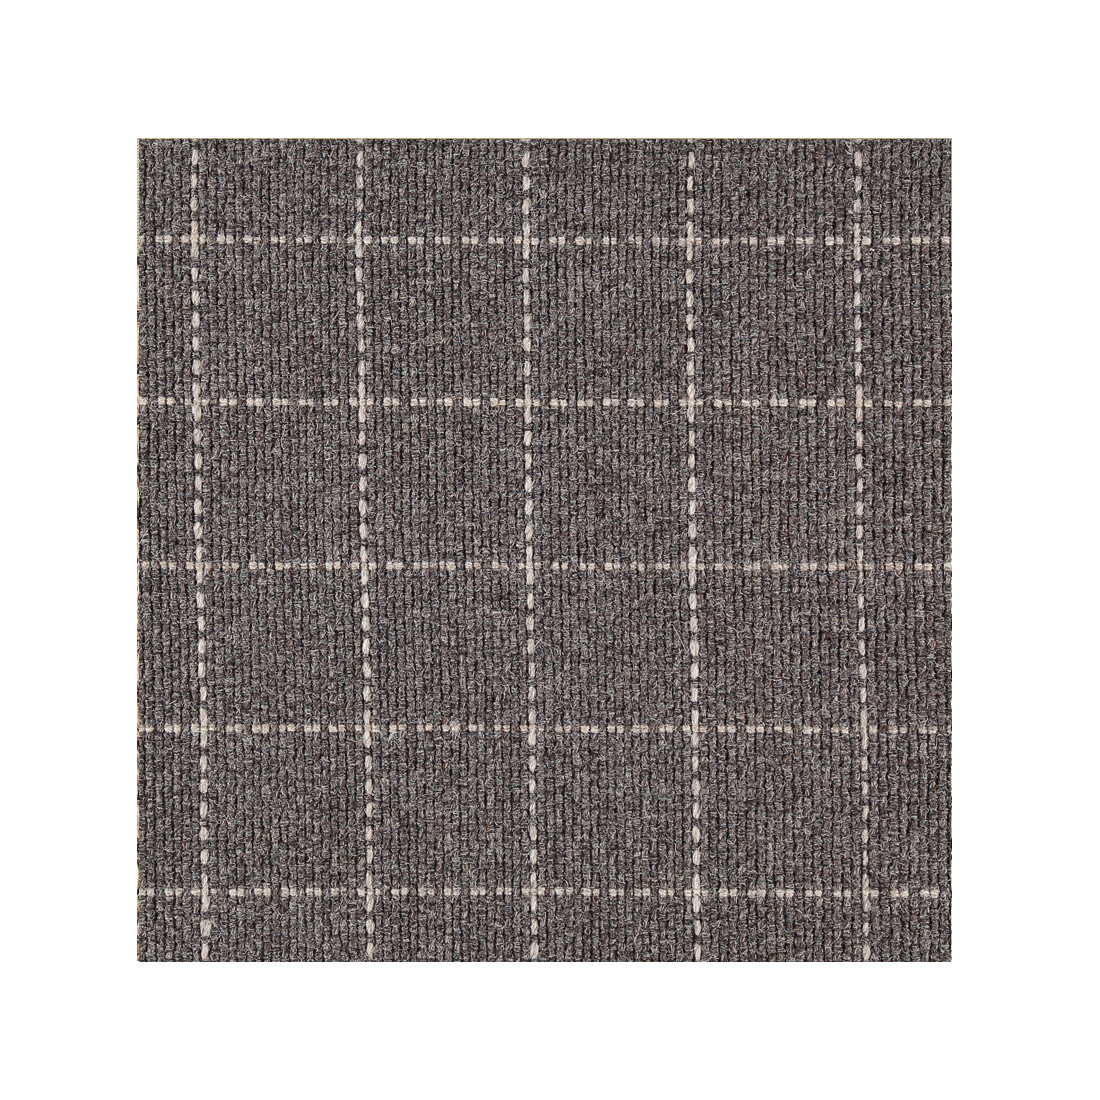 Library - 100% Woven Wool Hand Loomed  - Coal